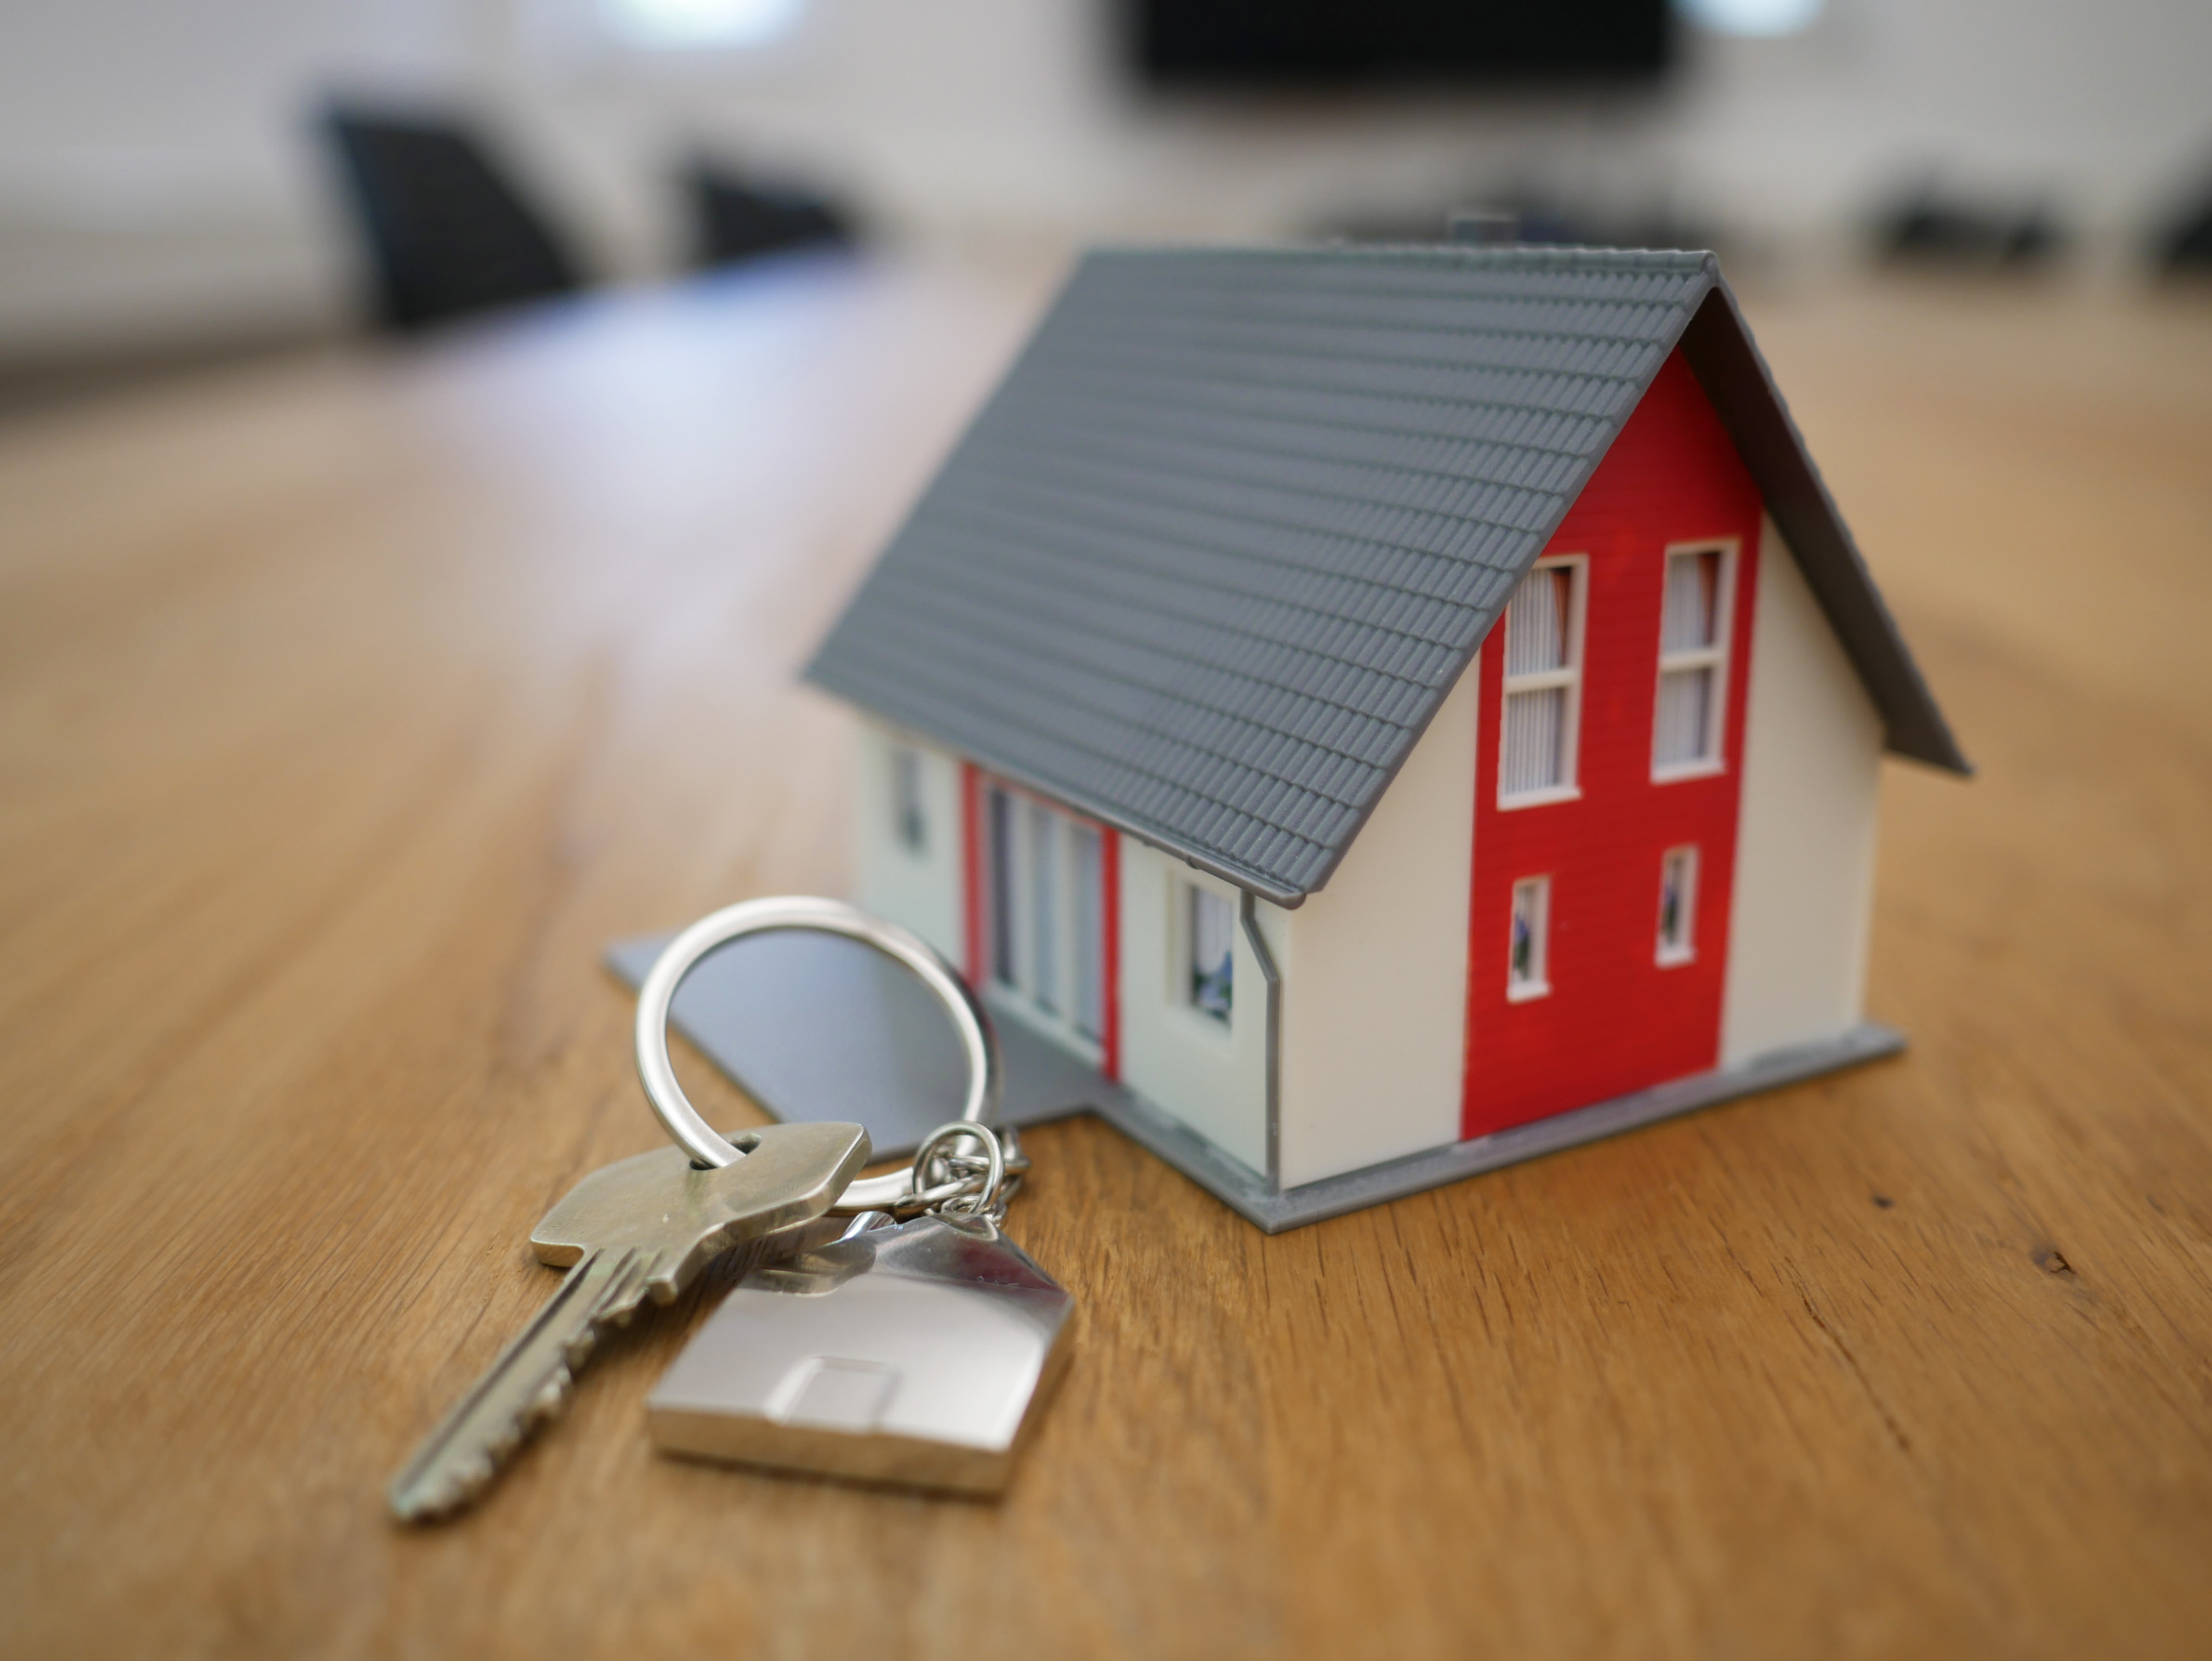 Miniature home with keys sitting on a table.